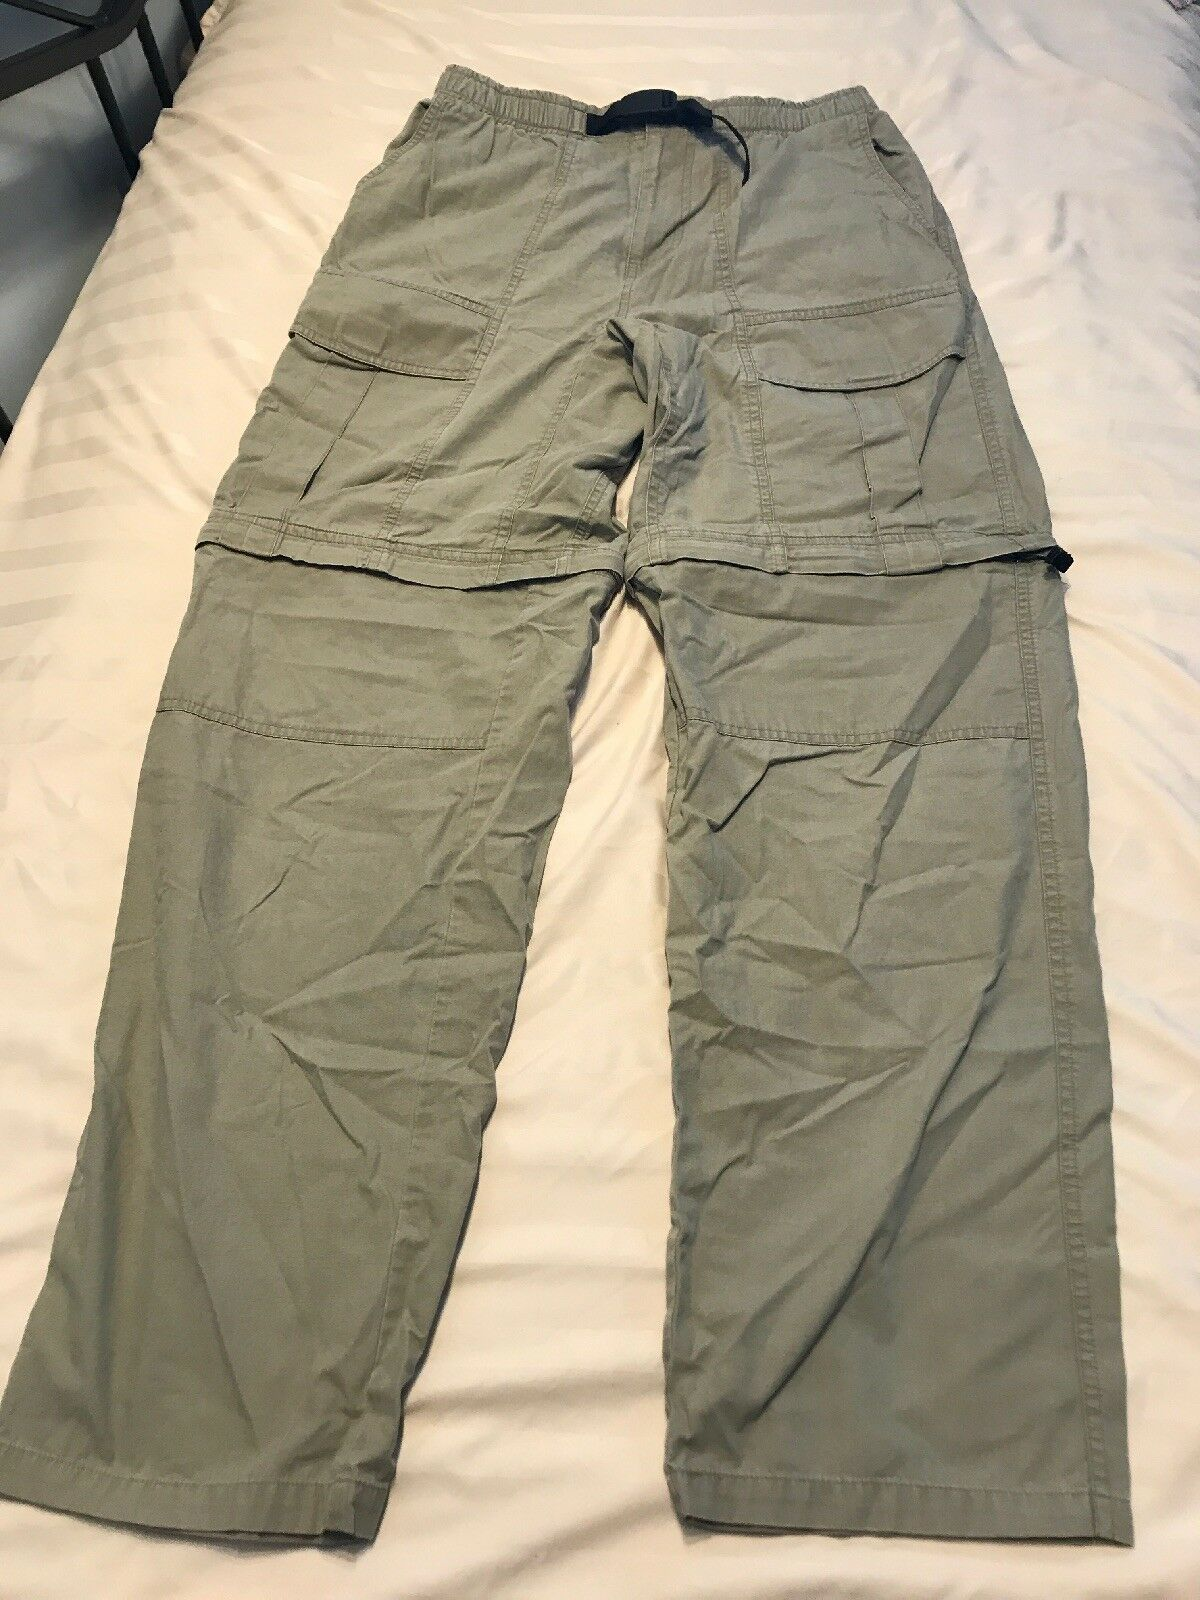 Oxide Mens Cargo Pants Shorts Light Olive Green Sz Small SC8